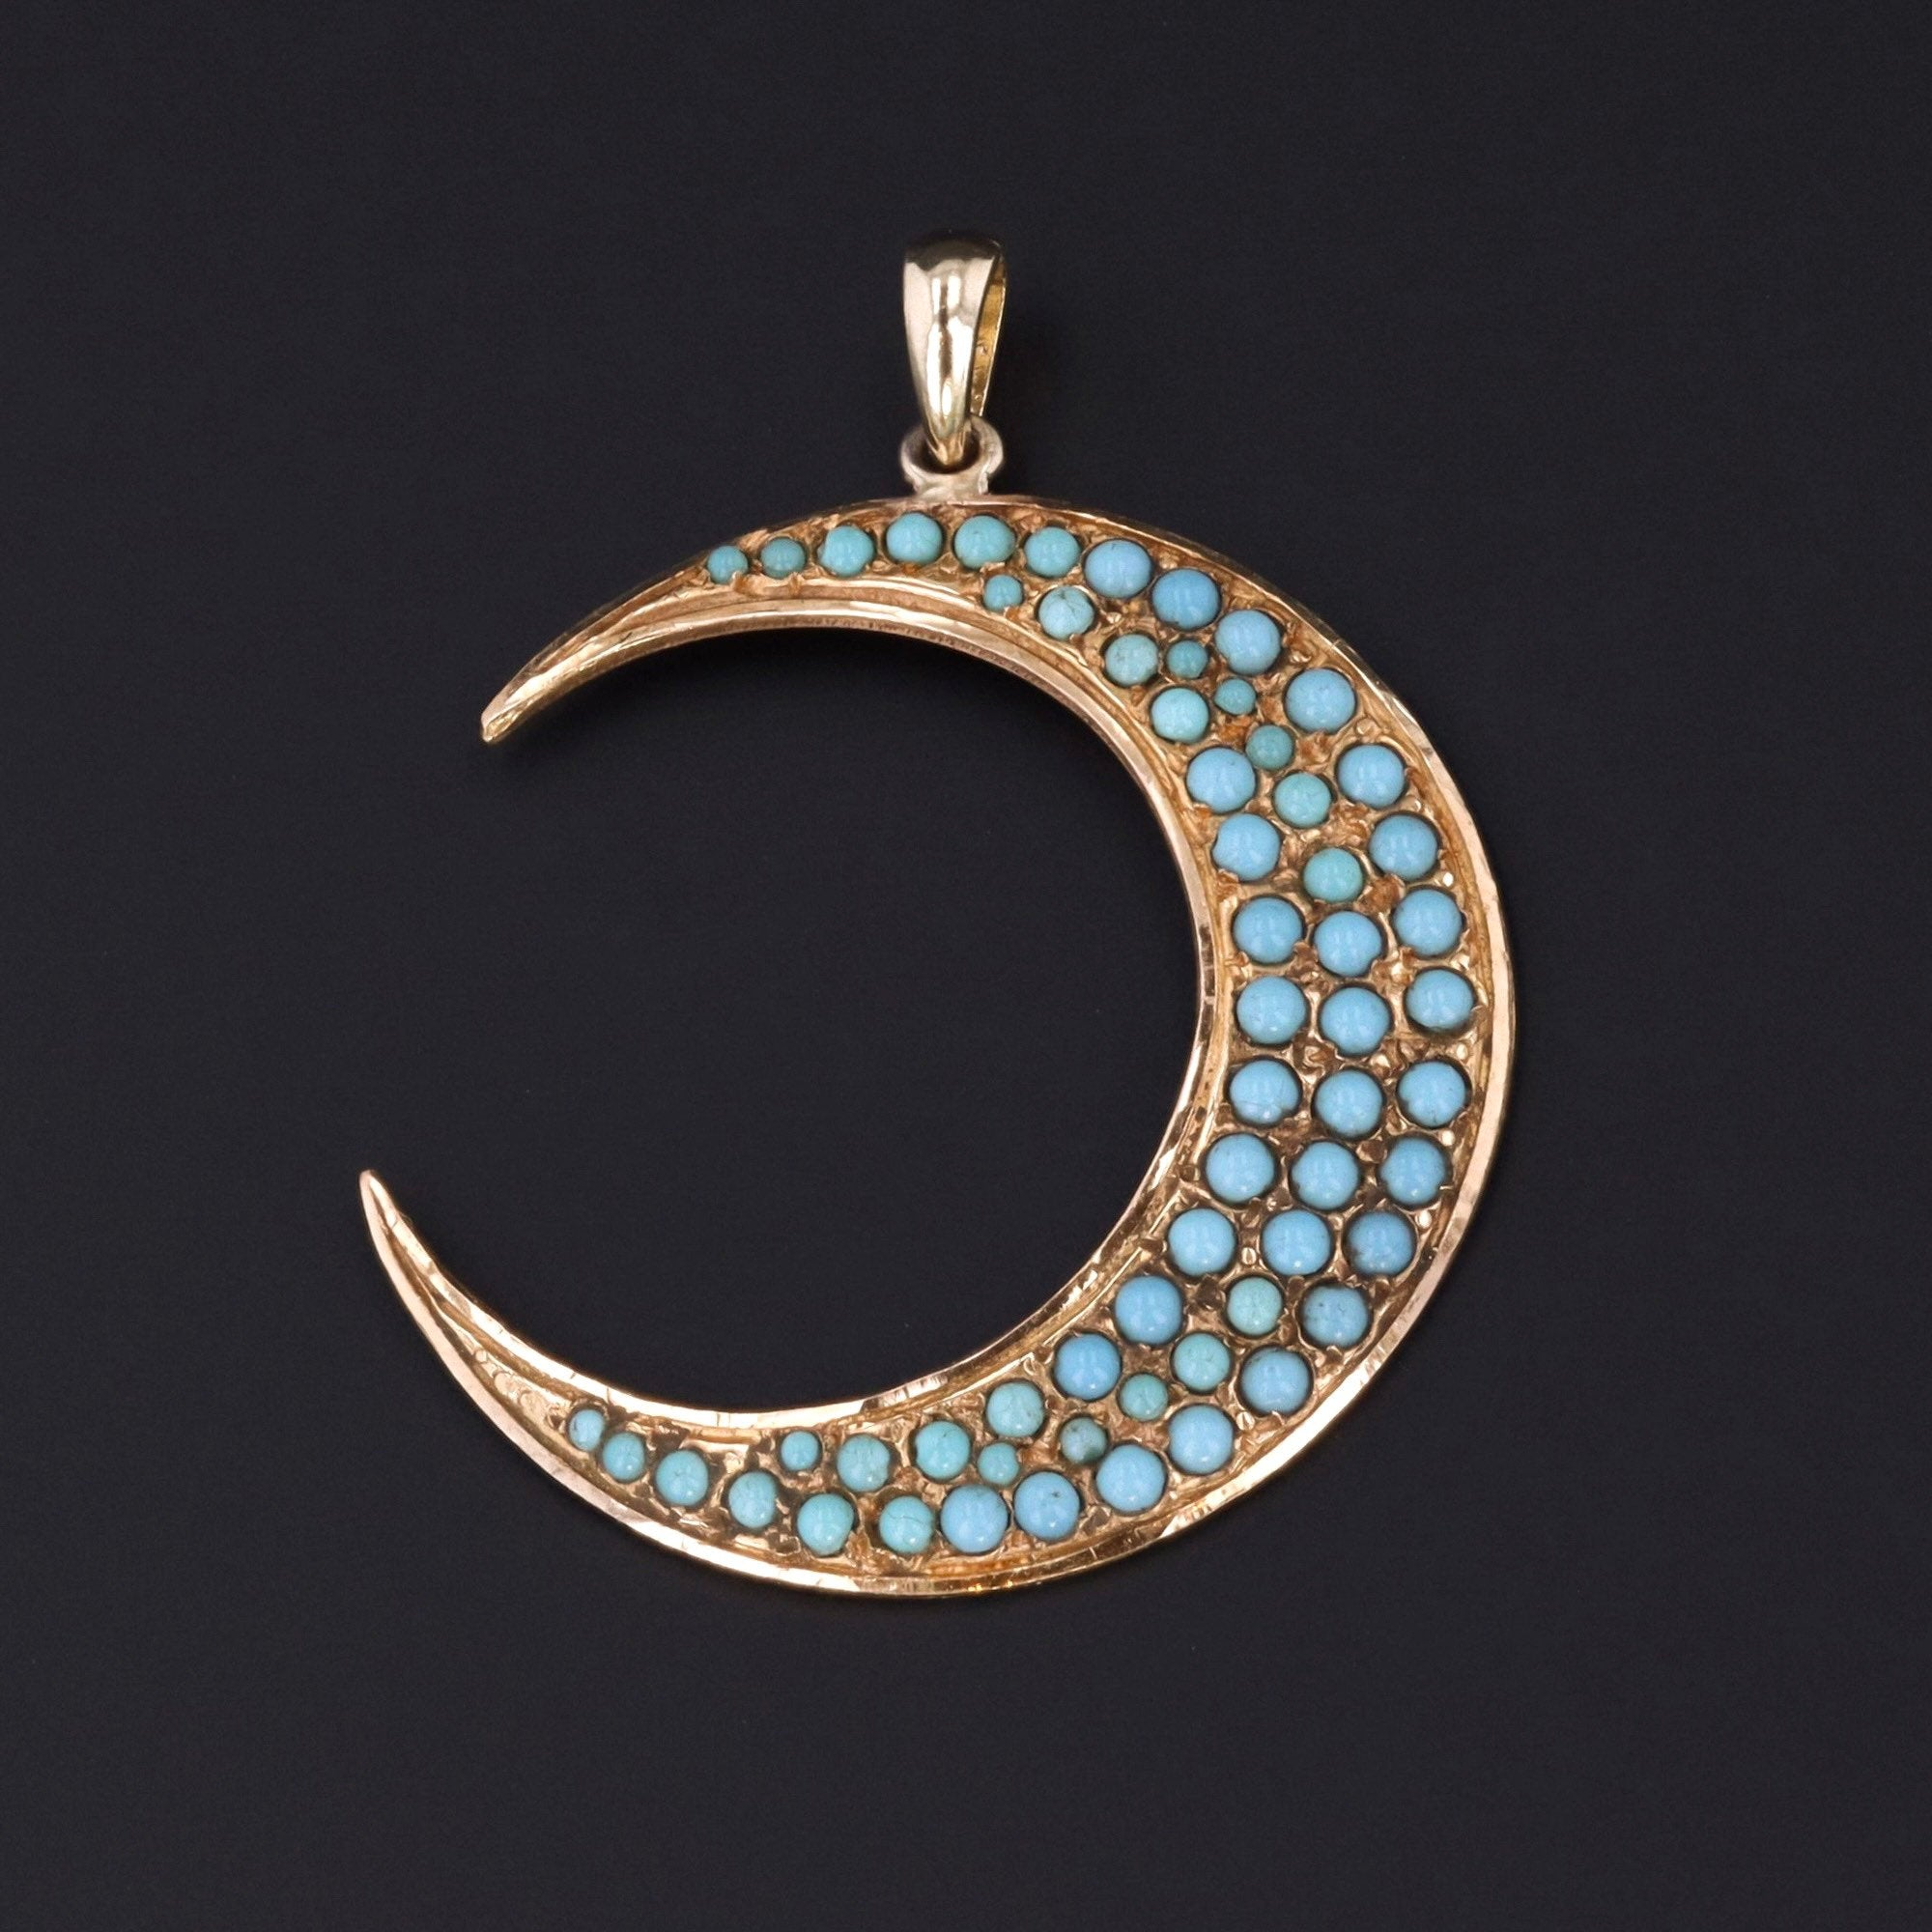 Crescent Moon Pendant | Turquoise Glass Crescent Moon Pendant | Antique Pin Conversion | 14K Gold Pendant | Crescent Moon